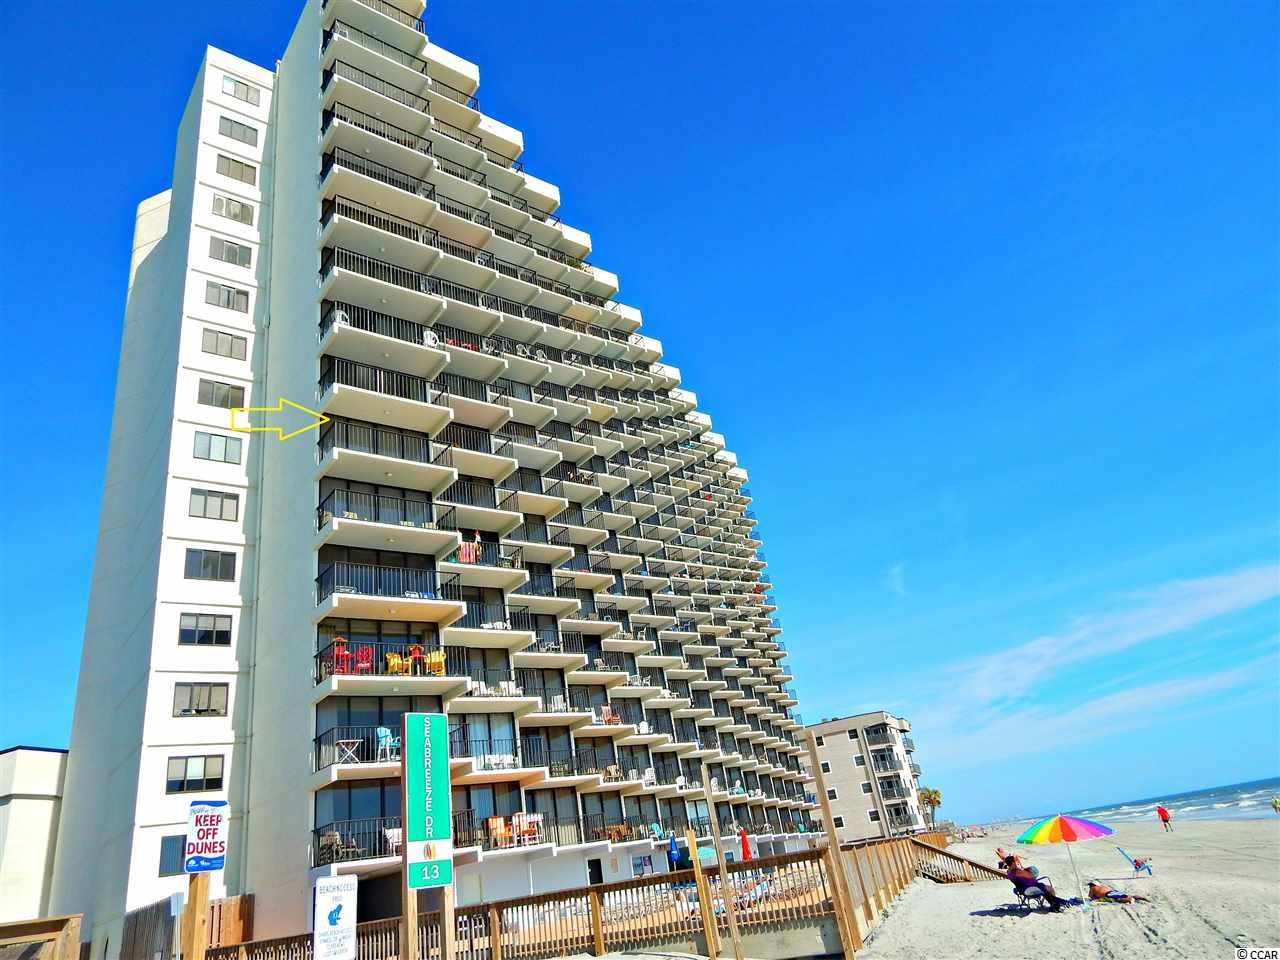 Come see this 2br/2.5 bath 7th floor corner unit condo with beautiful northern and southern coastline views. This building is concrete and steel construction and has been kept in very good condition. Complex has both indoor and outdoor pool and spa. Schedule your appointment today!